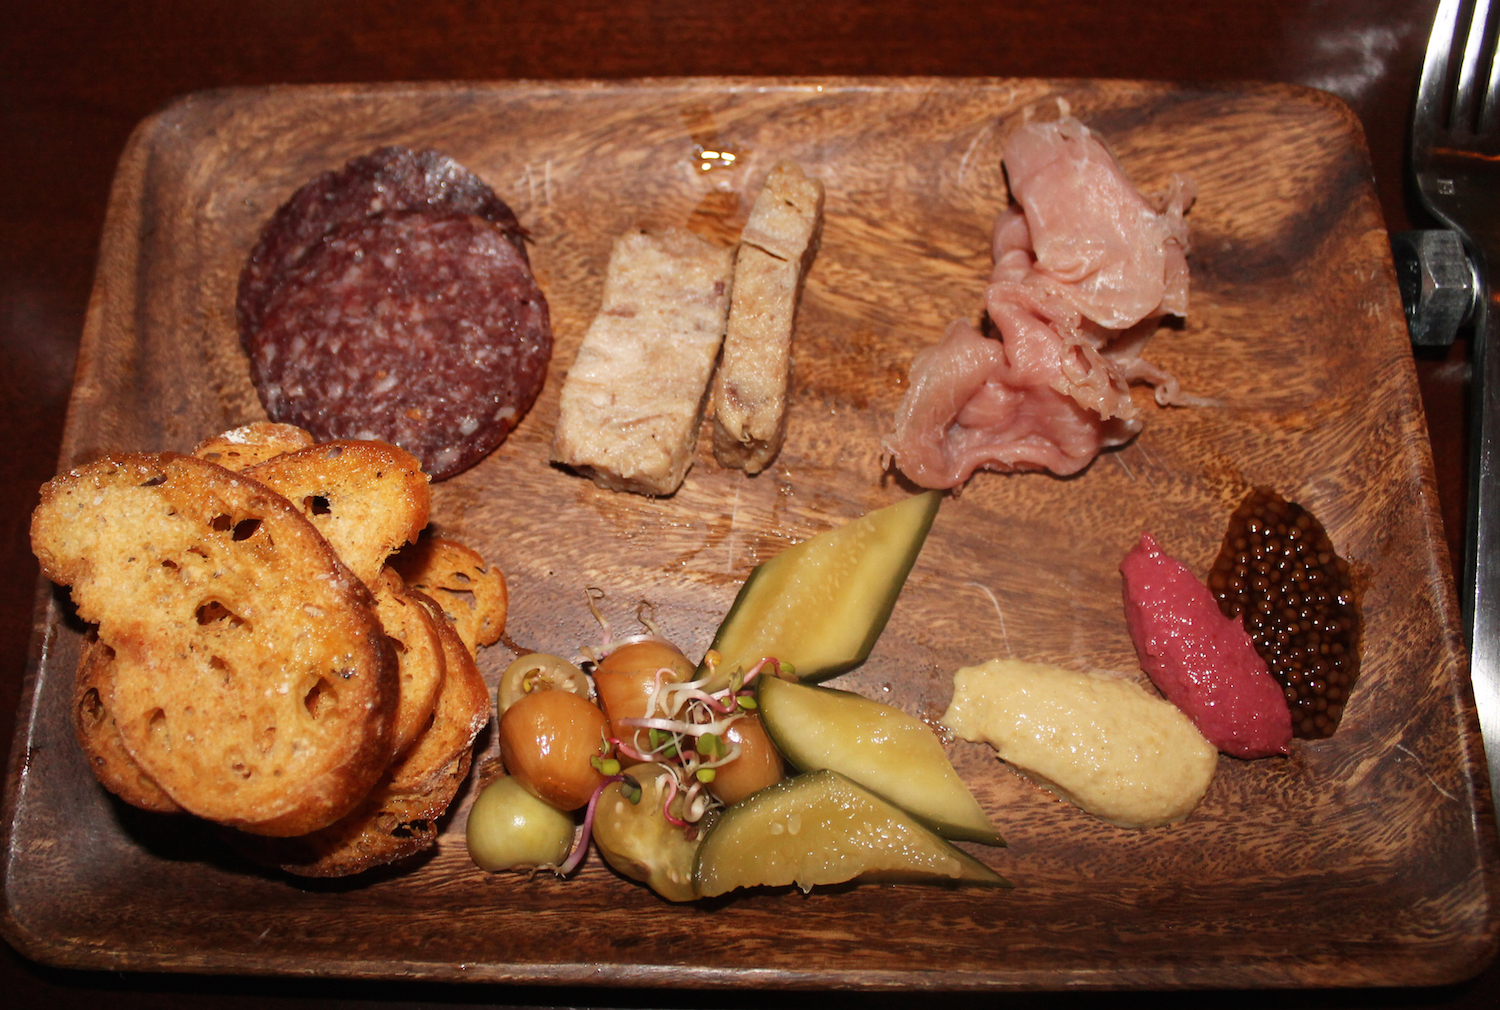 Vension Salami, Country Pate, Country Ham, Mustards, Pickles, Crostini